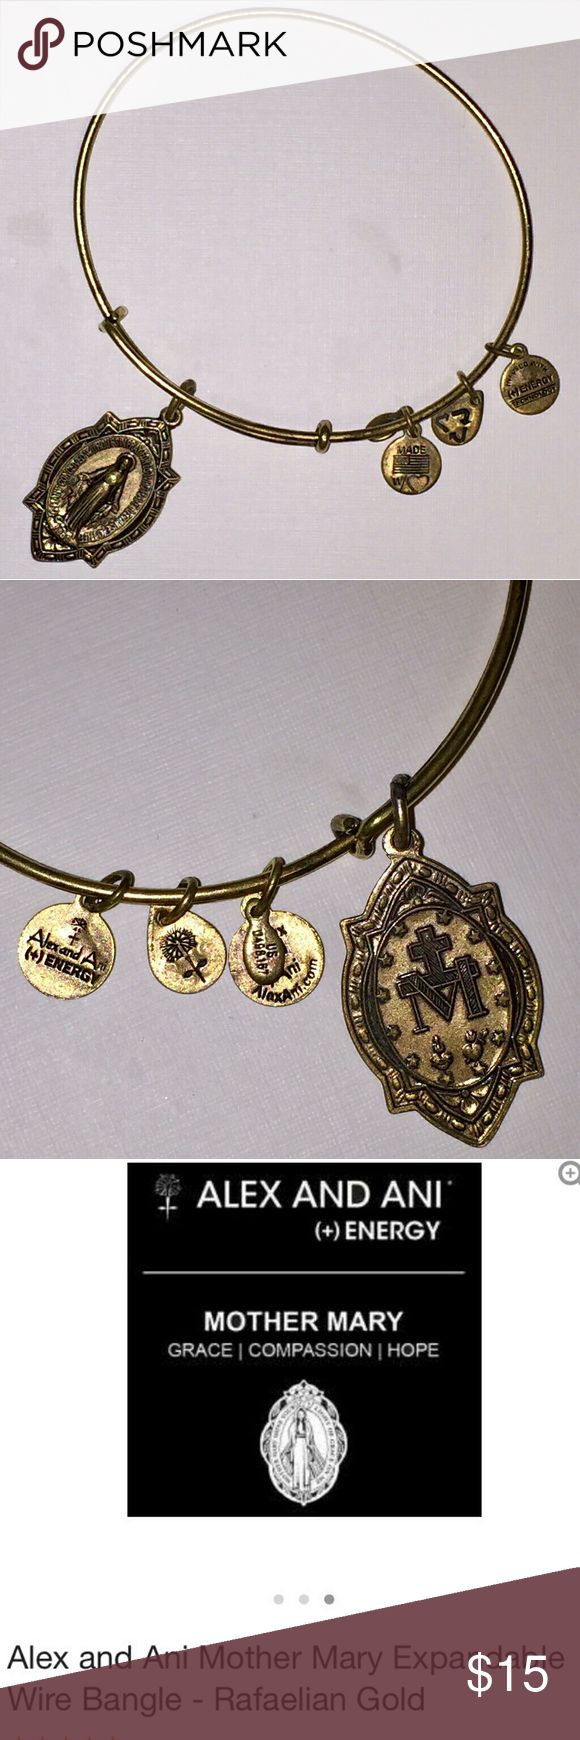 ALEX AND ANI MOTHER MARY GOLD BRACELET ALEX AND ANI Mother Mary Faux gold bracelet. Worn but in good condition. Still in stores now for over $28.00 Alex & Ani Jewelry Bracelets